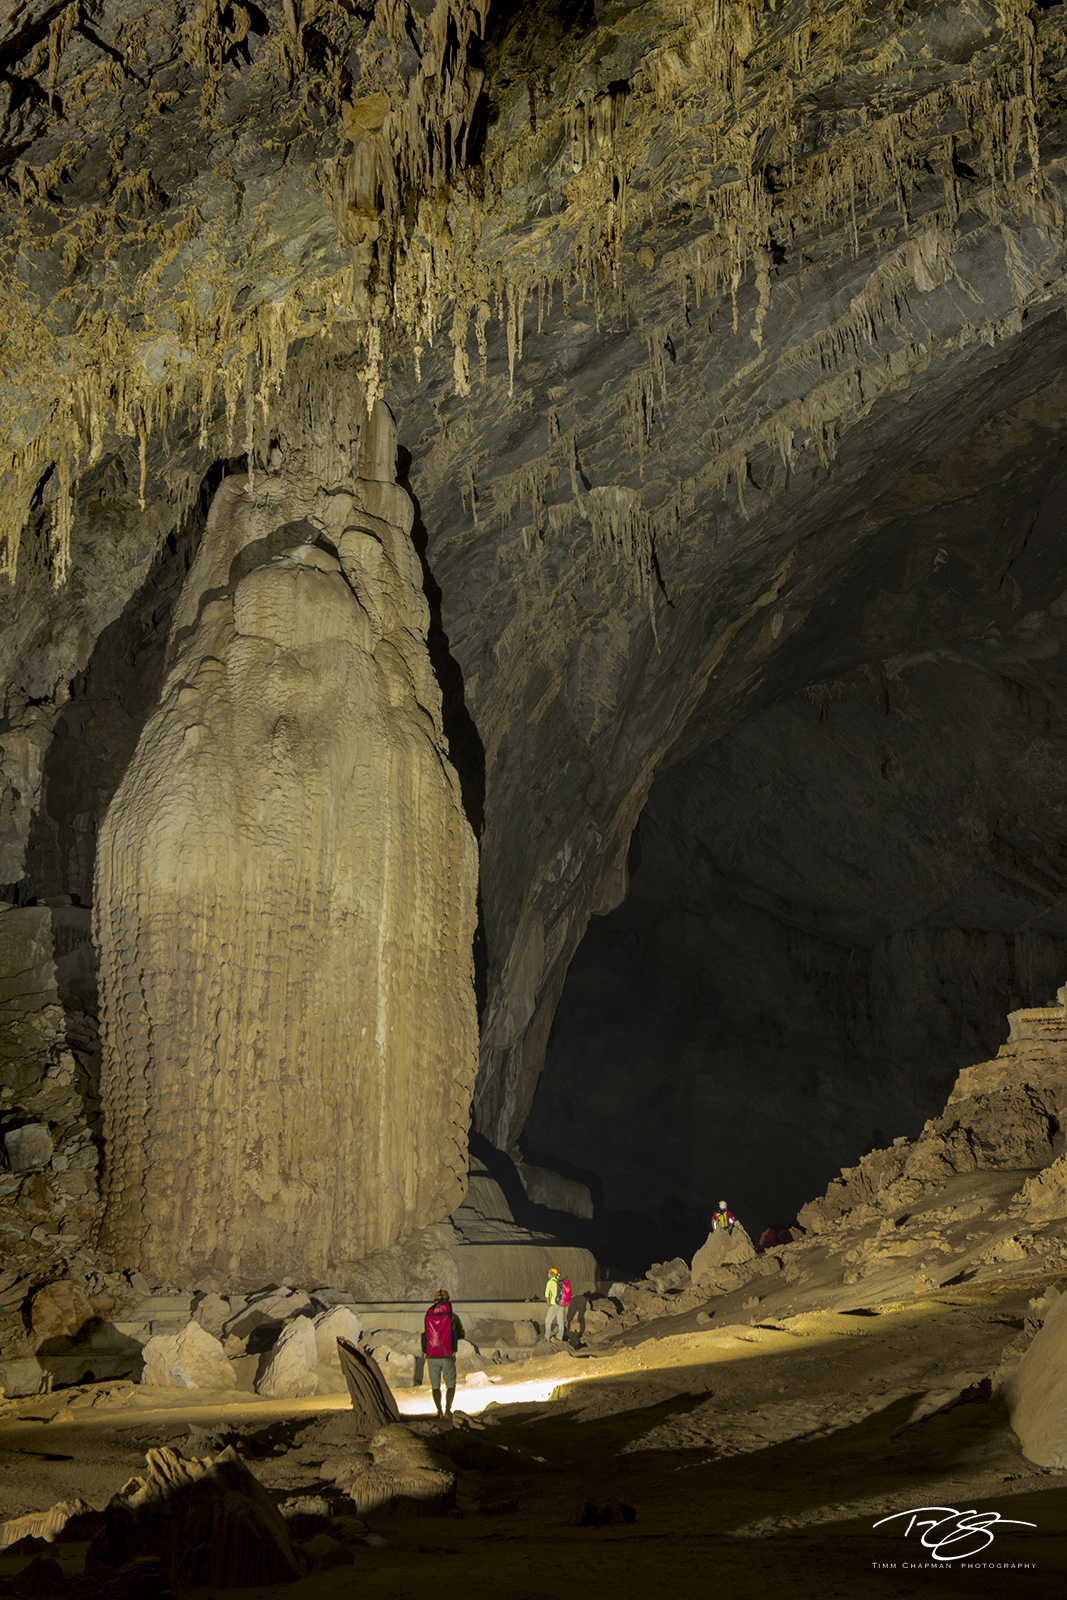 Cave explorers pass by an enormous stalactite inside Hang Én cave